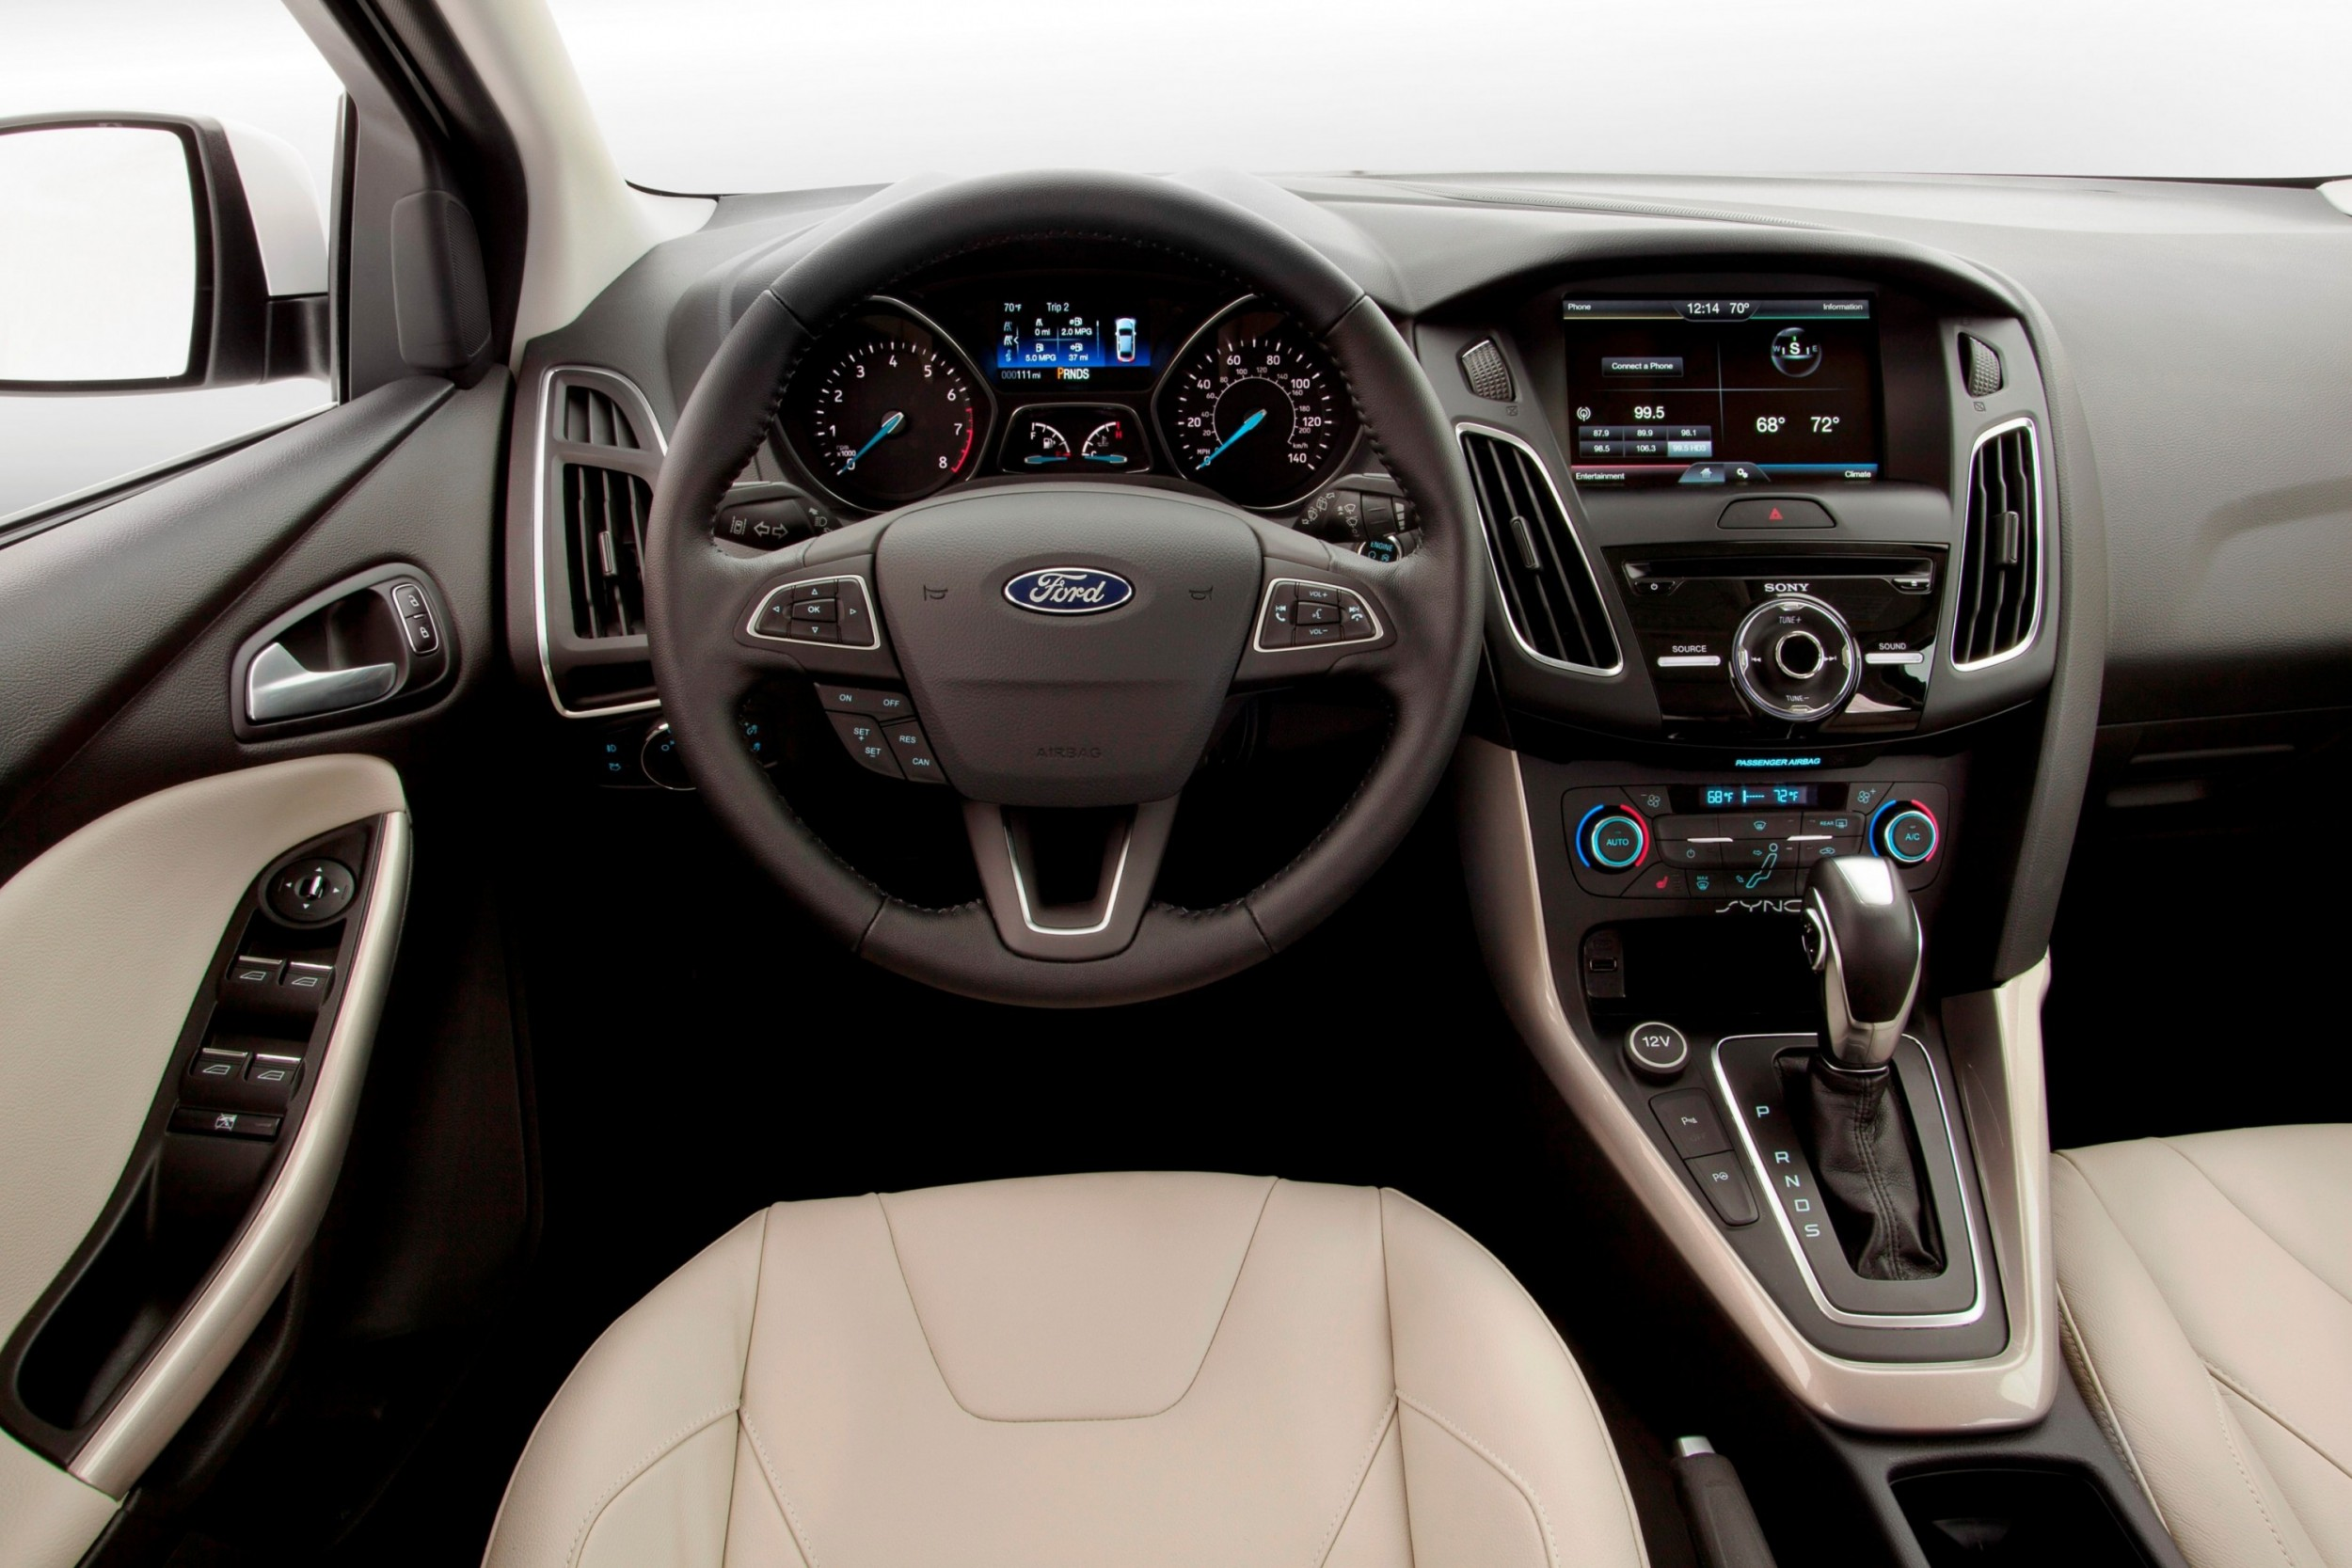 2015 ford focus tech and design refresh adds 8 inch nav ecoboost triple led accents